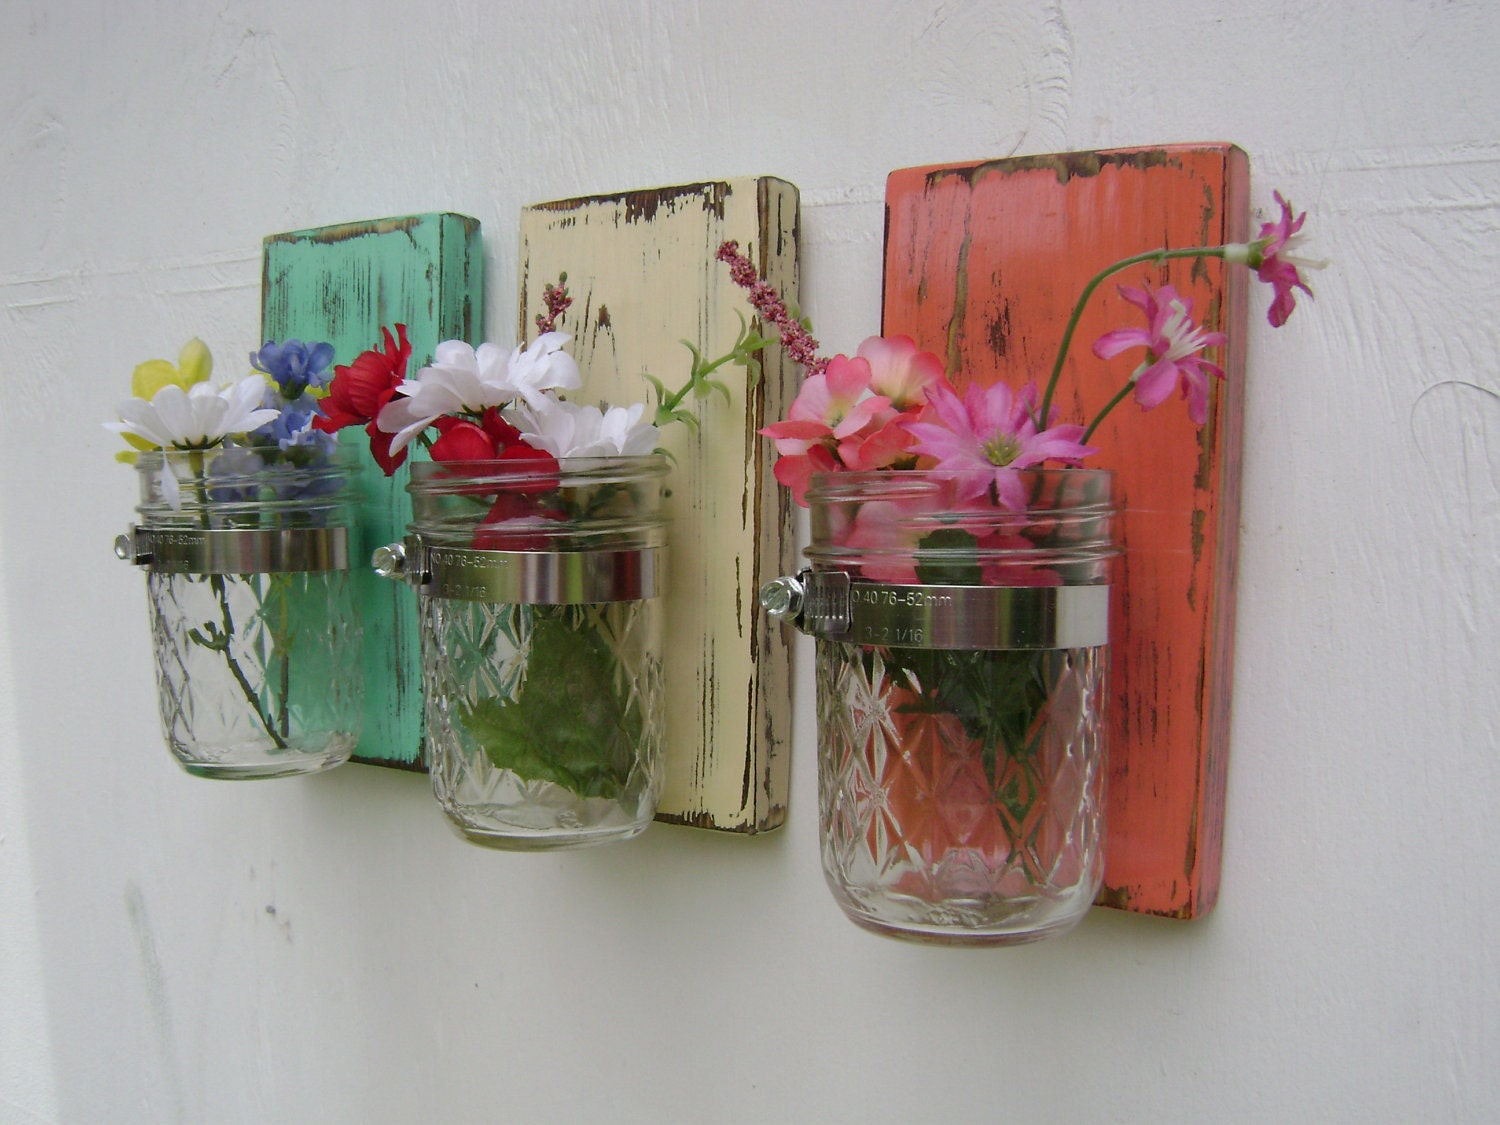 Wall sconce shabby chic rustic wooden vases by unclejohnscabin for Bathroom decor vases